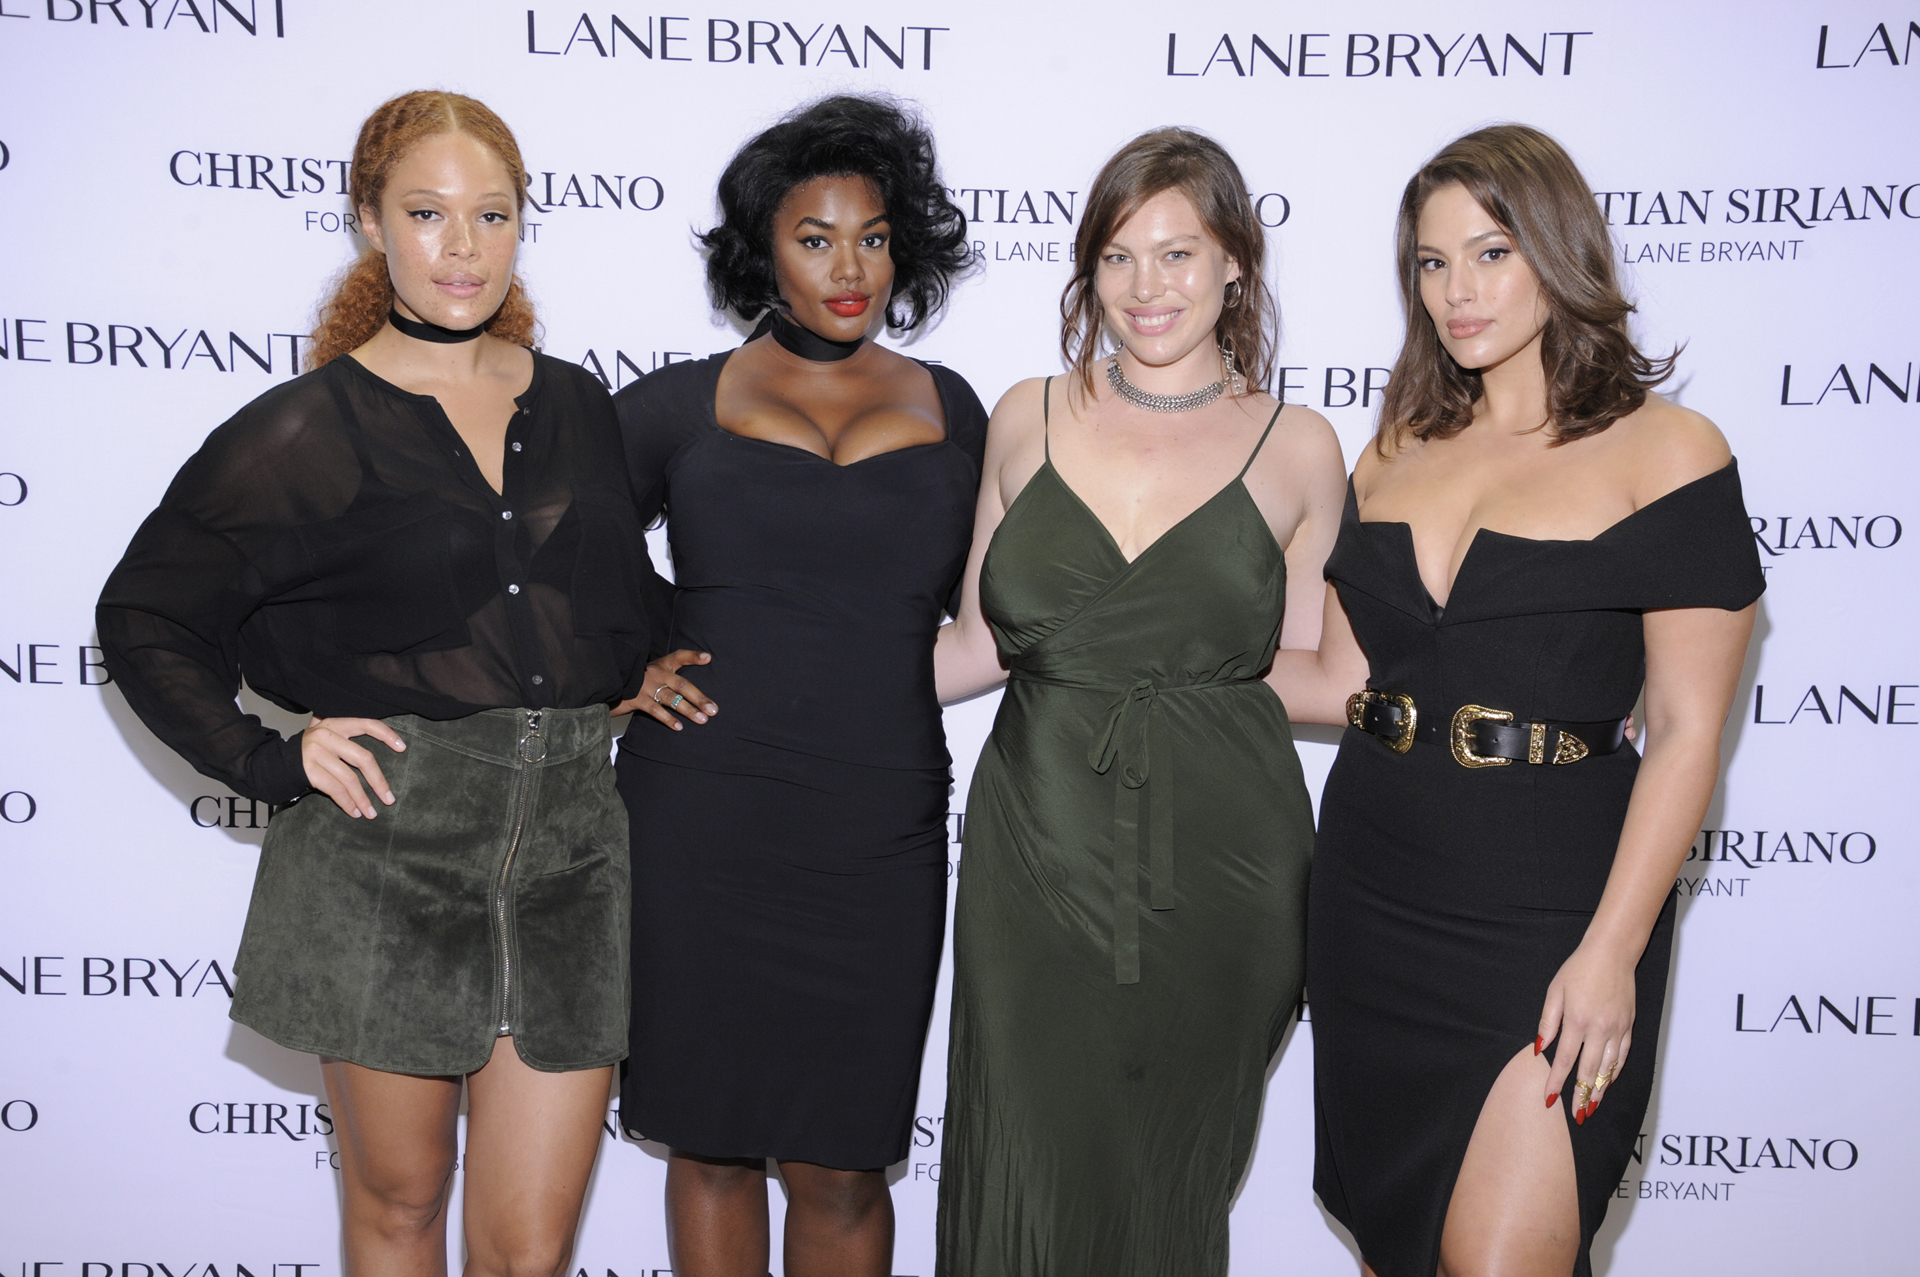 Sabina Karlsson, Precious Lee, Georgia Pratt y Ashley Graham en el desfile de Christian Siriano, donde lucieron sus diseños en la pasarela (Photo by Matthew Eisman/Getty Images for Lane Bryant)